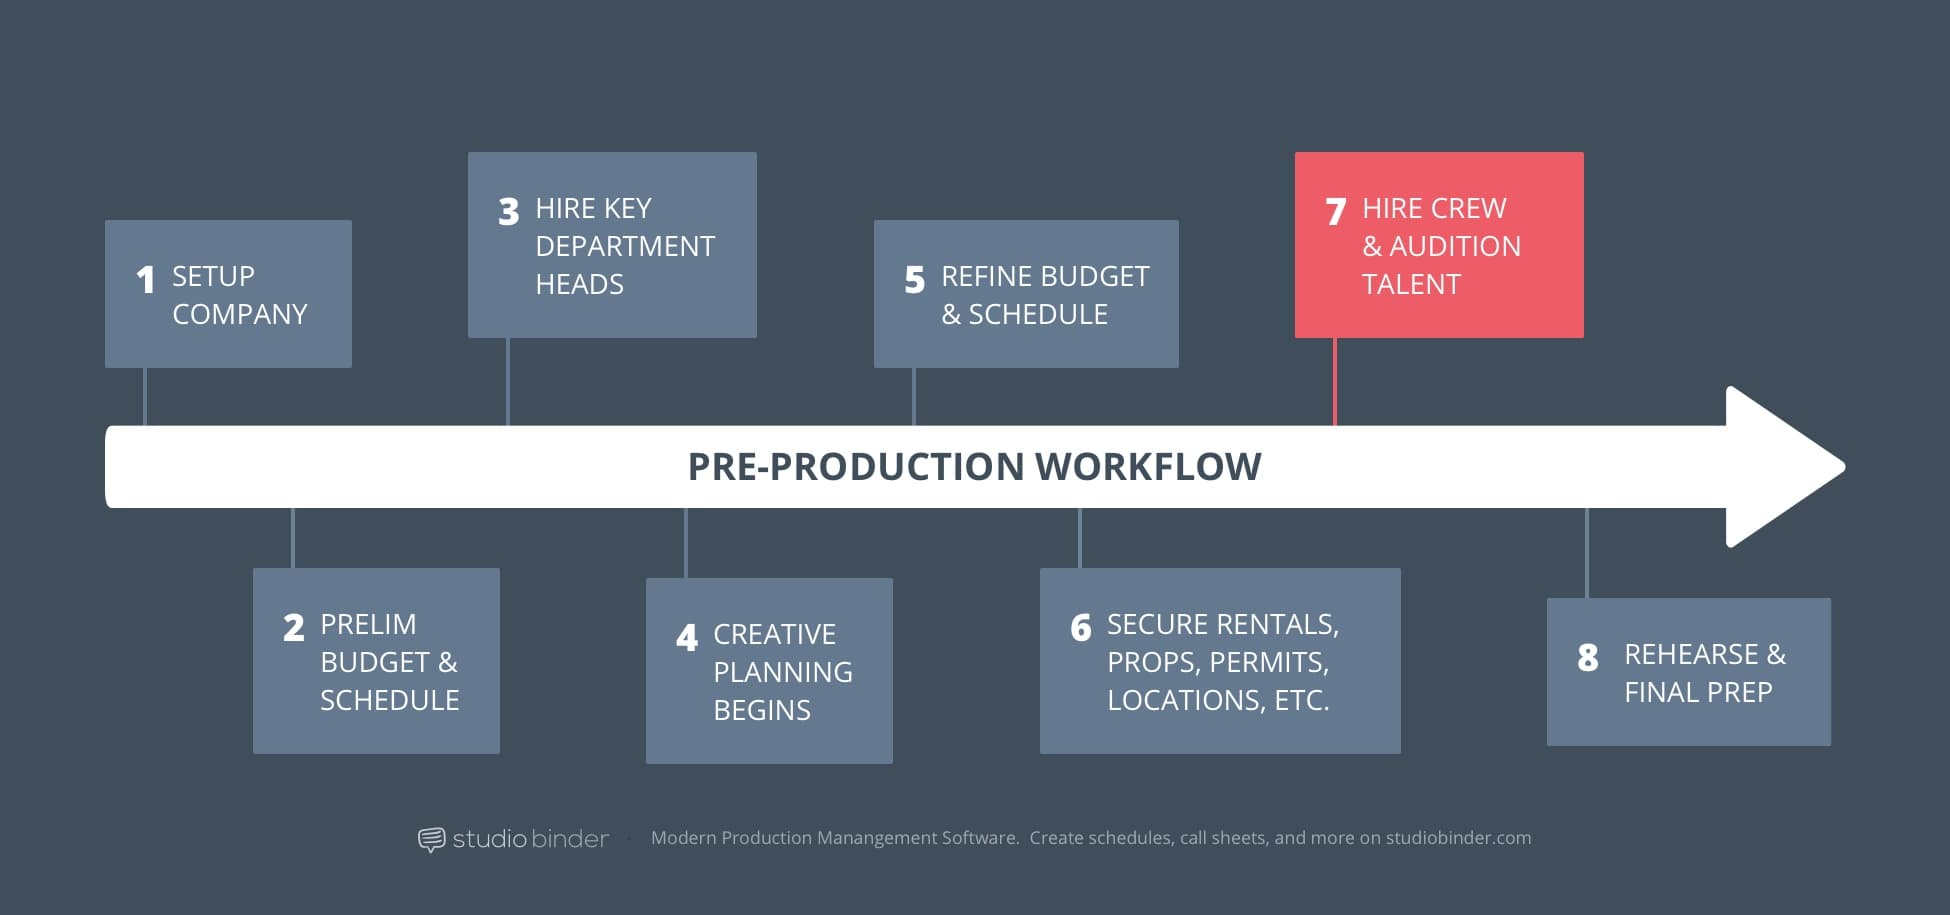 7 - StudioBinder Pre-Production Workflow - Hire Crew and Audience Talent